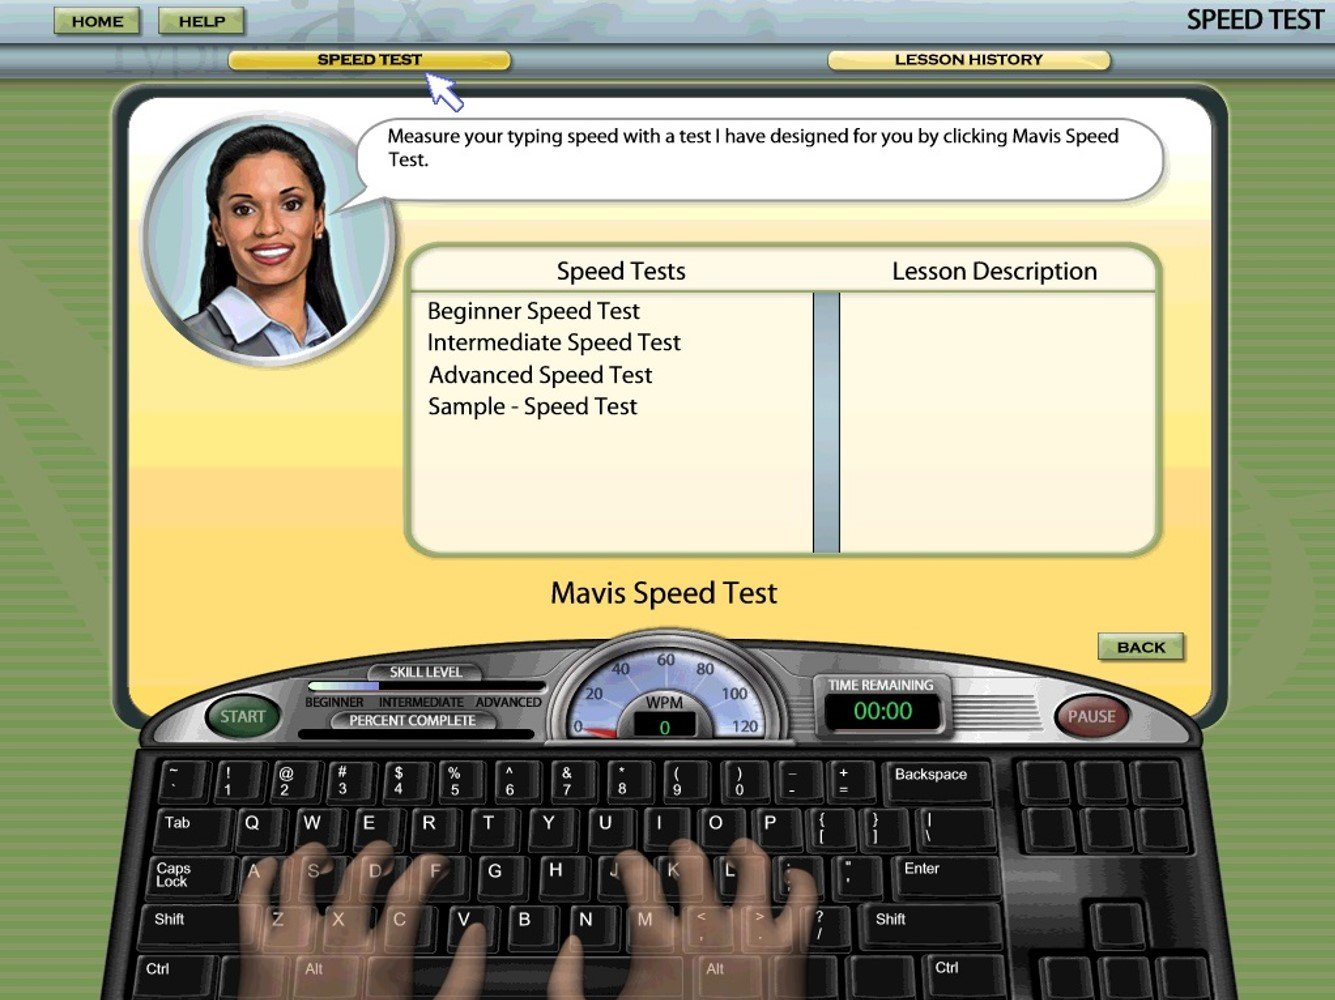 Mavis Beacon Teaches Typing Deluxe 20 - Old Version by Encore (Image #5)